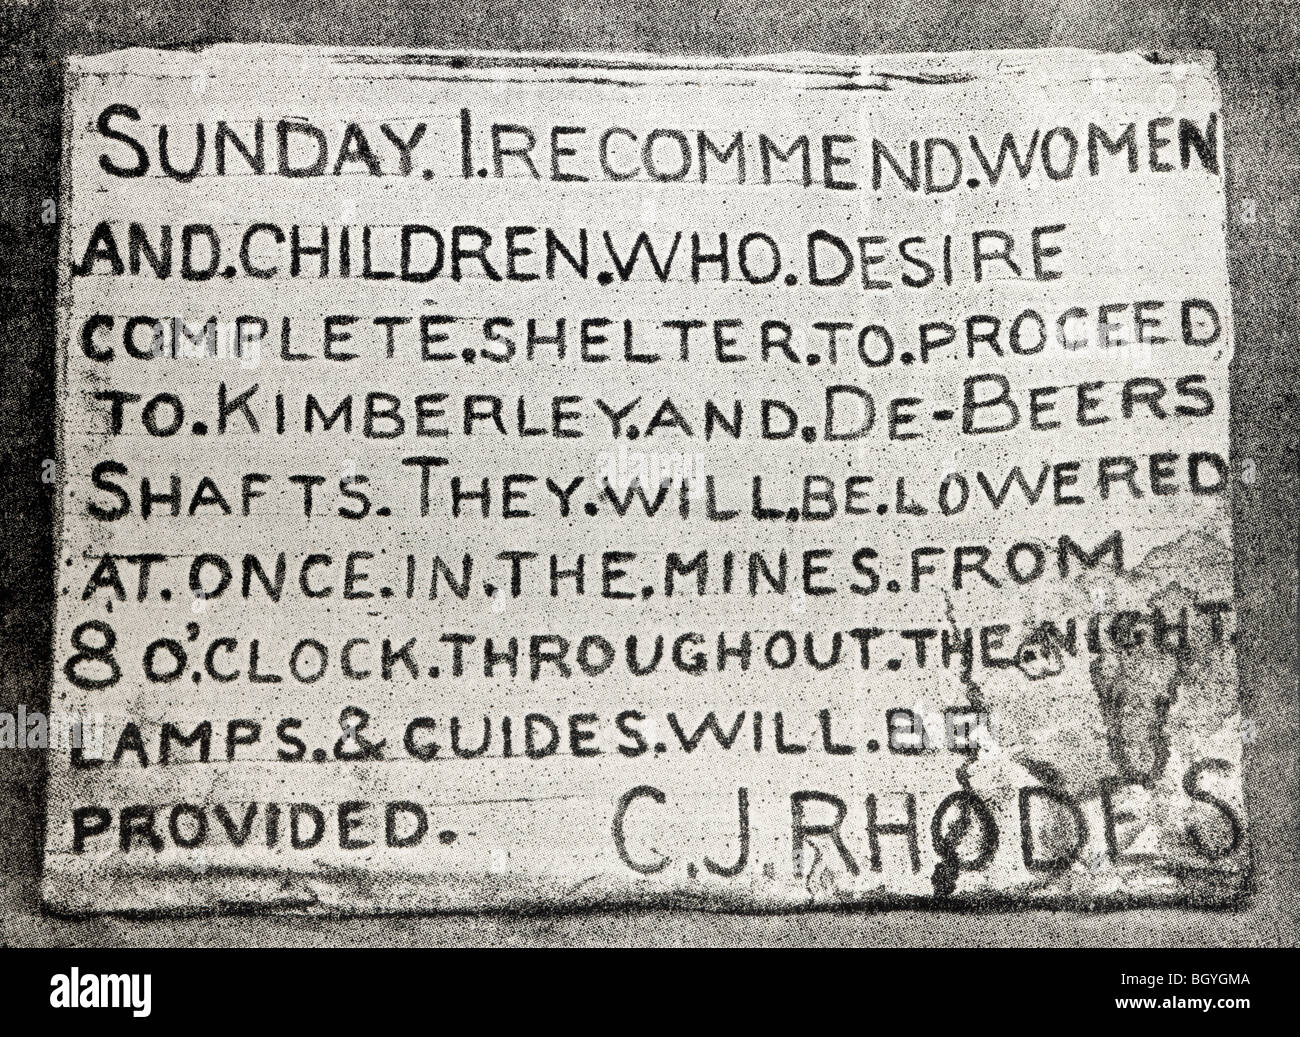 Placard erected by Cecil Rhodes during the bombardment of Kimberley, allowing women and children to shelter in Kimberley - Stock Image